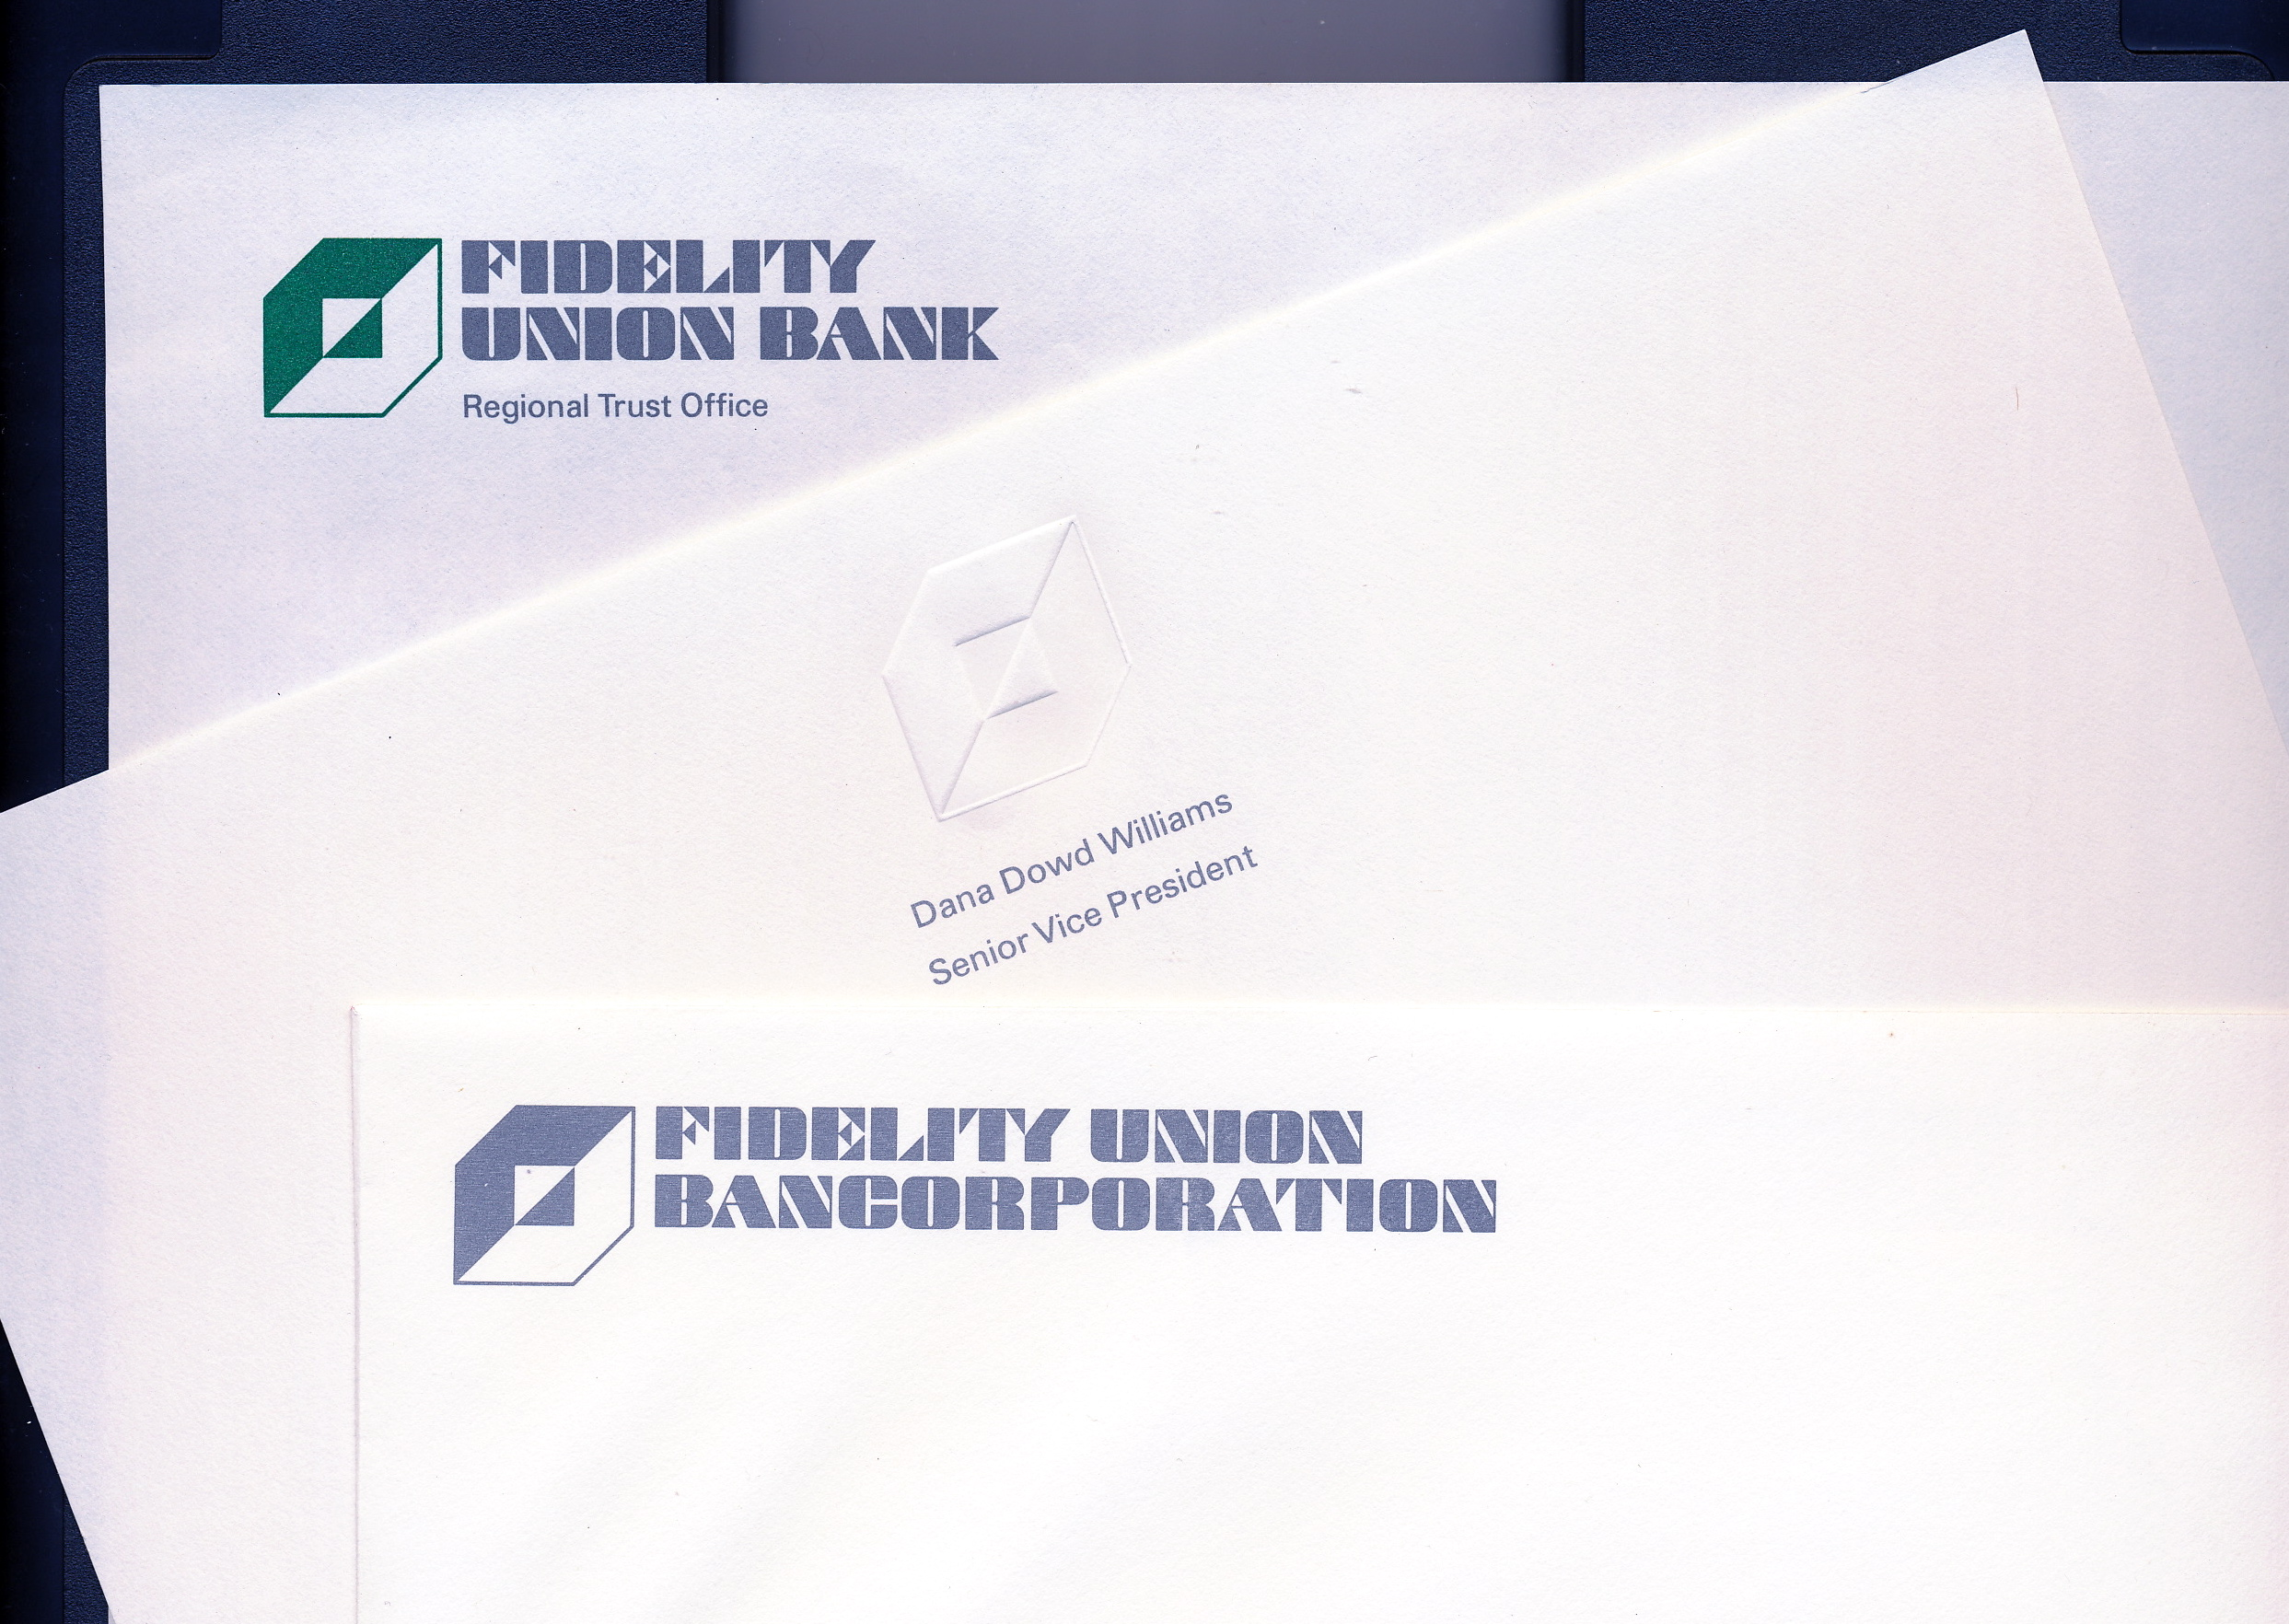 Logo and typface applications atop several pieces of paper.  Three different designs for the new letterhead.